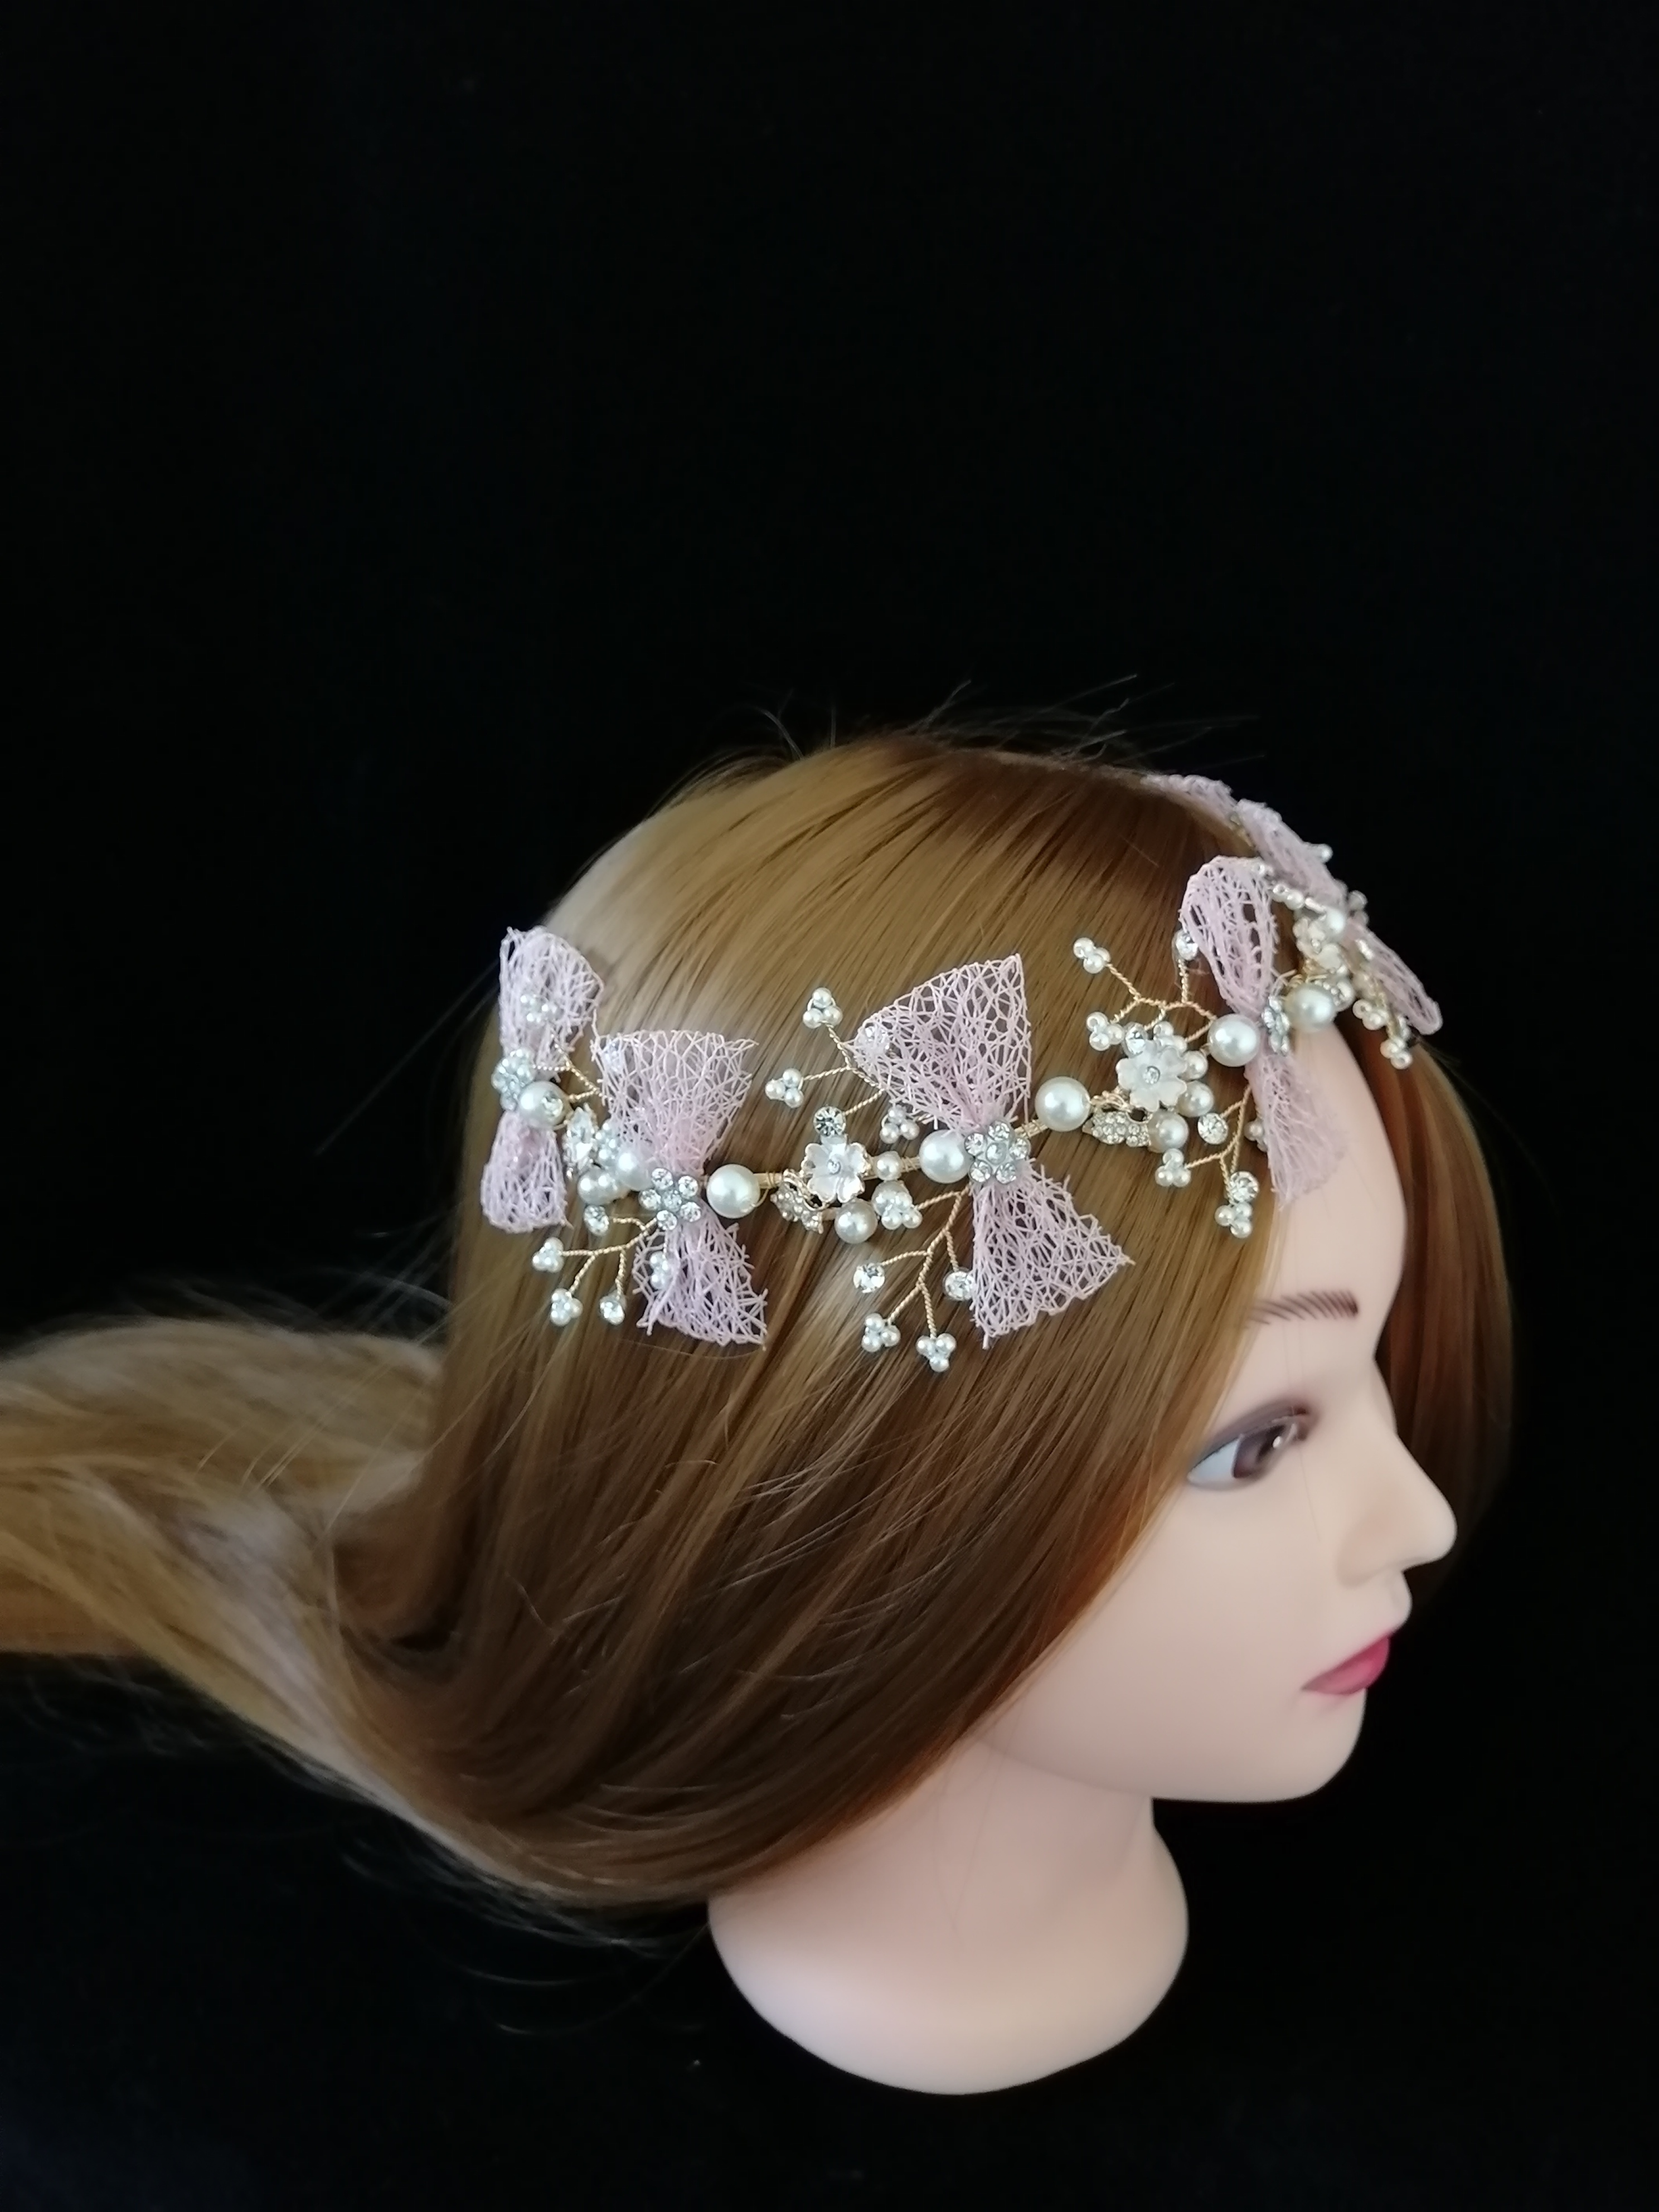 Superior Pink Bow Bridal Tiaras Headbands Hairwear Chaplet Hairdressing  Jewelry Accessories,Luxury Korean Wedding Comb